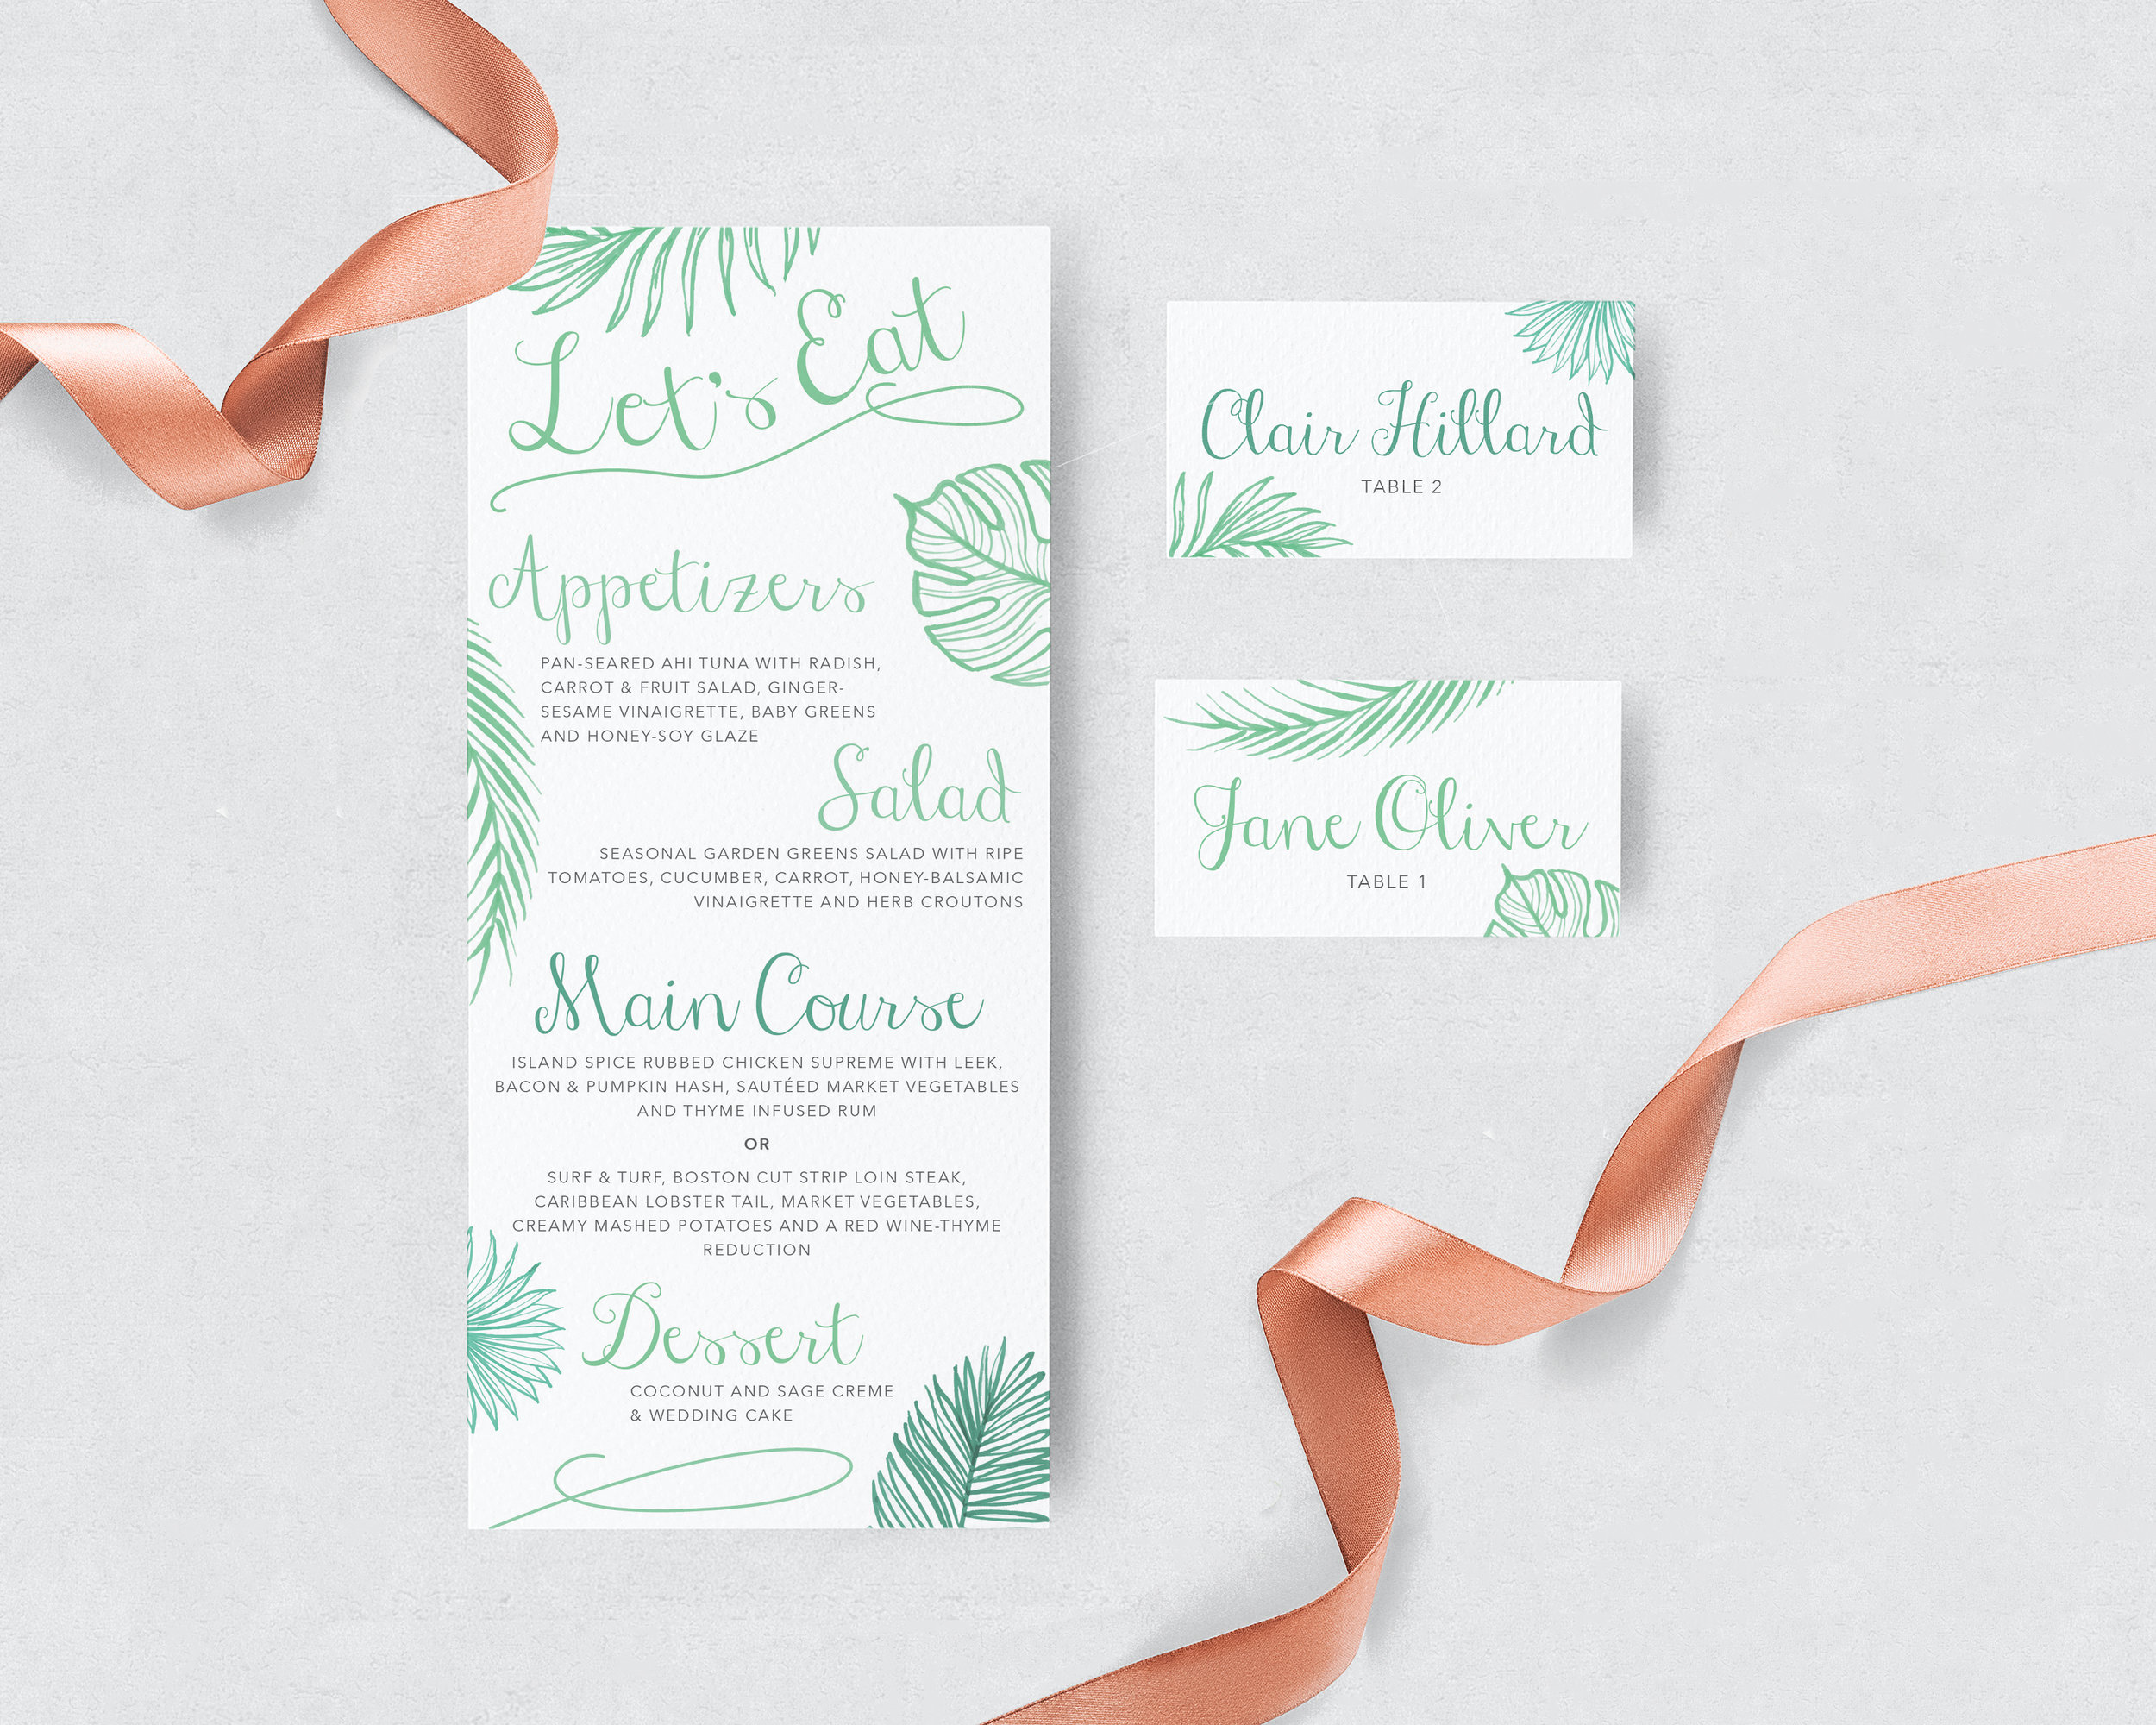 Wedding Stationery Mockup.jpg